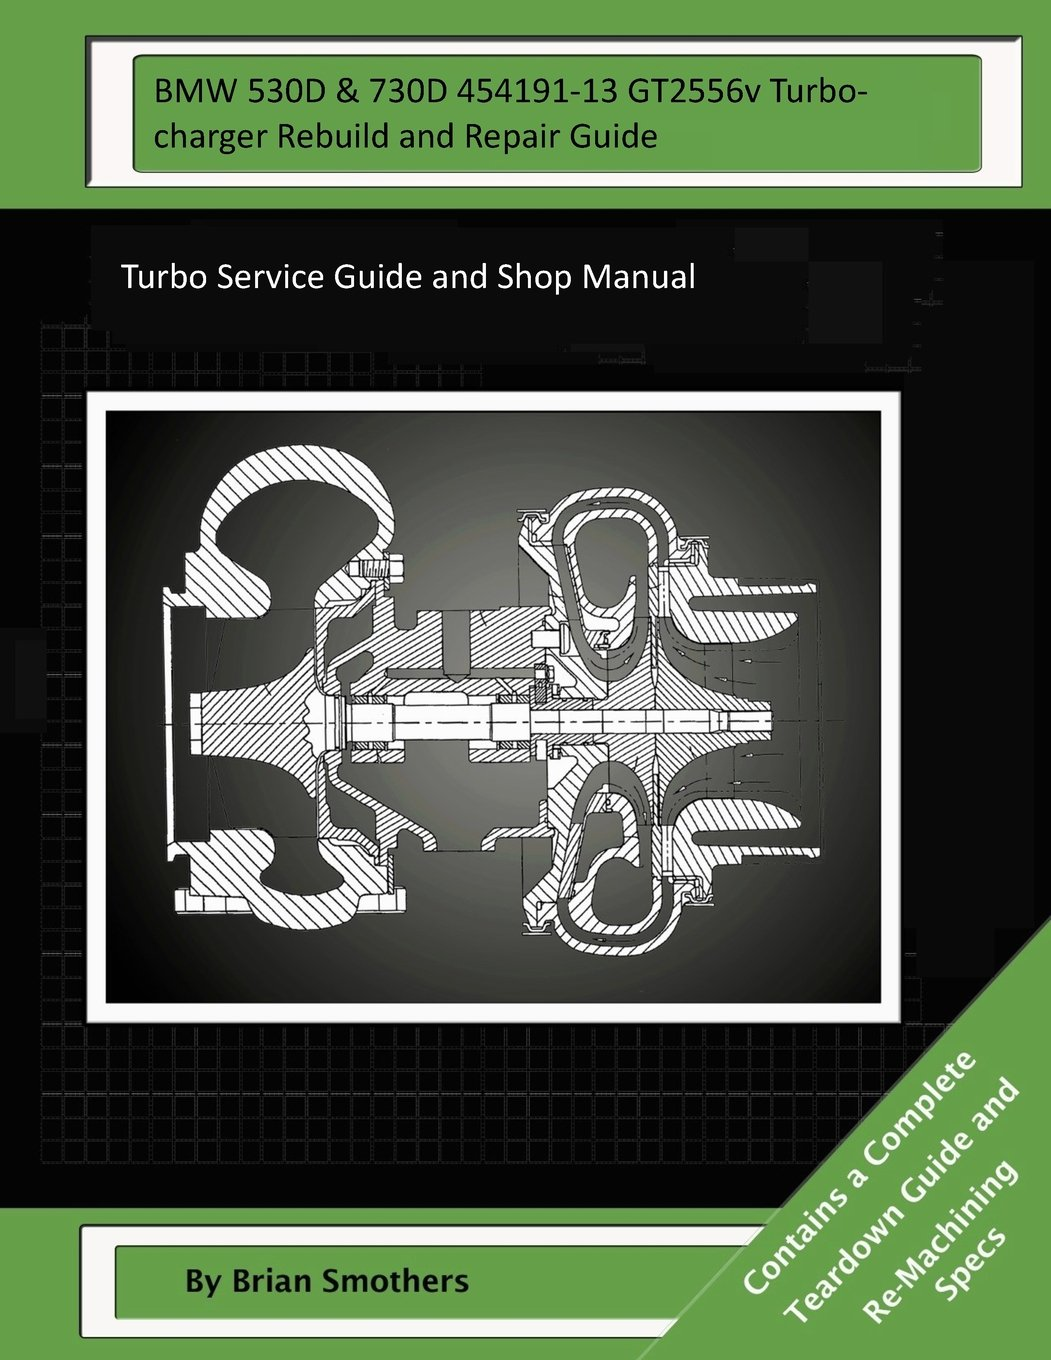 BMW 530D & 730D 454191-13 GT2556v Turbocharger Rebuild and Repair Guide: Turbo Service Guide and Shop Manual pdf